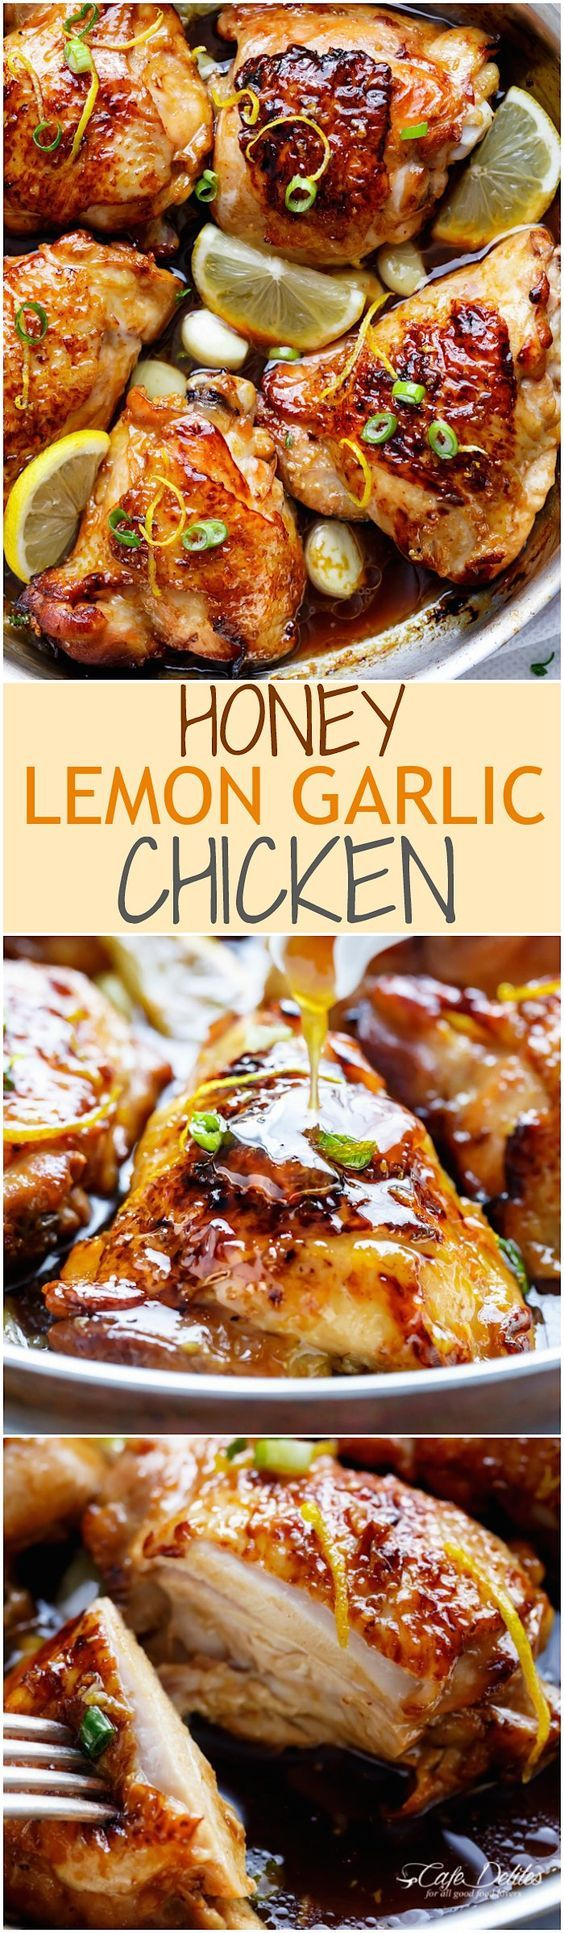 Juicy Honey Lemon Garlic Chicken with a crispy skin and a sweet, sticky sauce with ingredients you have in your kitchen cupboard! Pan fried…